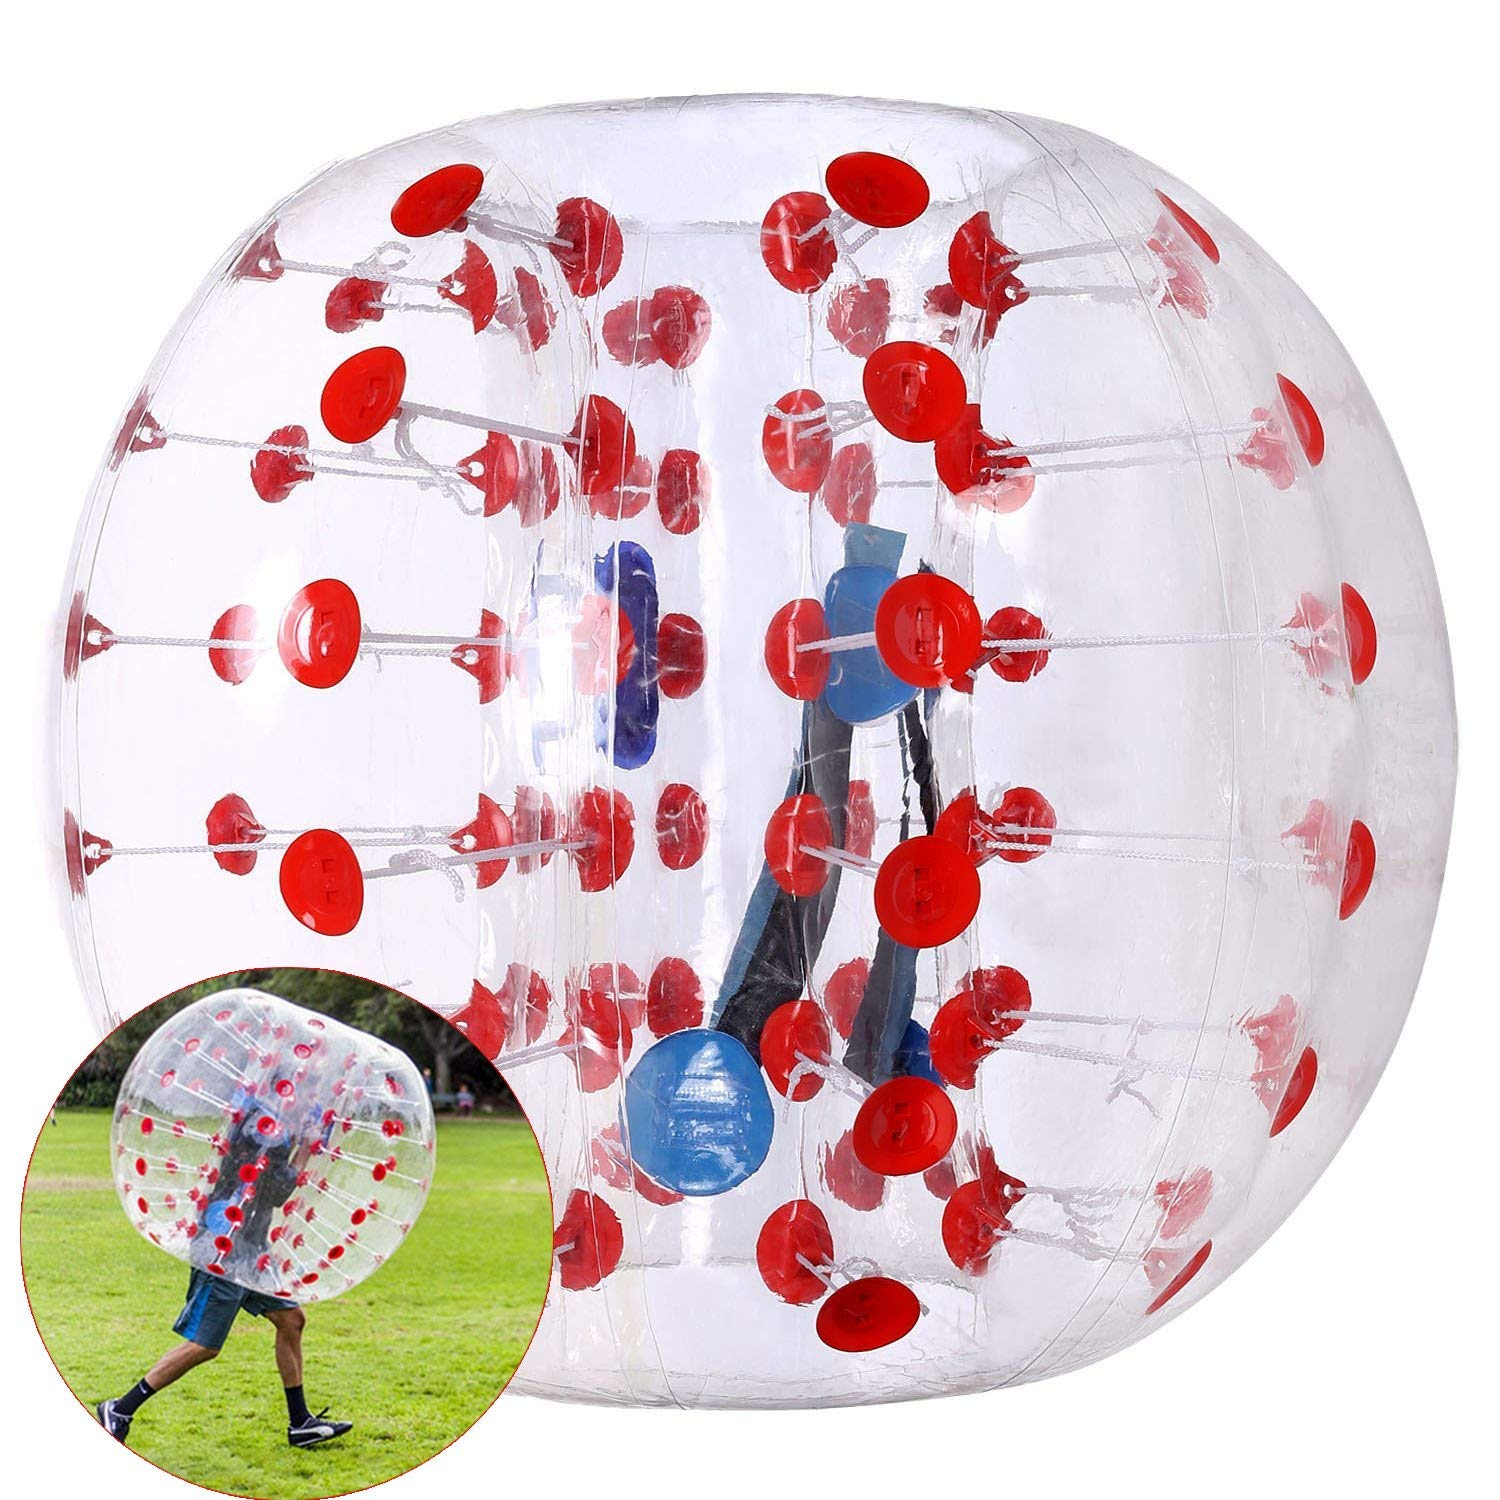 Anfan 1.2~1.5M Inflatable Bumper Ball 25.6 in Diameter Bubble Soccer Ball Transparent Material Human Knocker Ball for Adults and Child (Red Dot, 1.5M) by Anfan